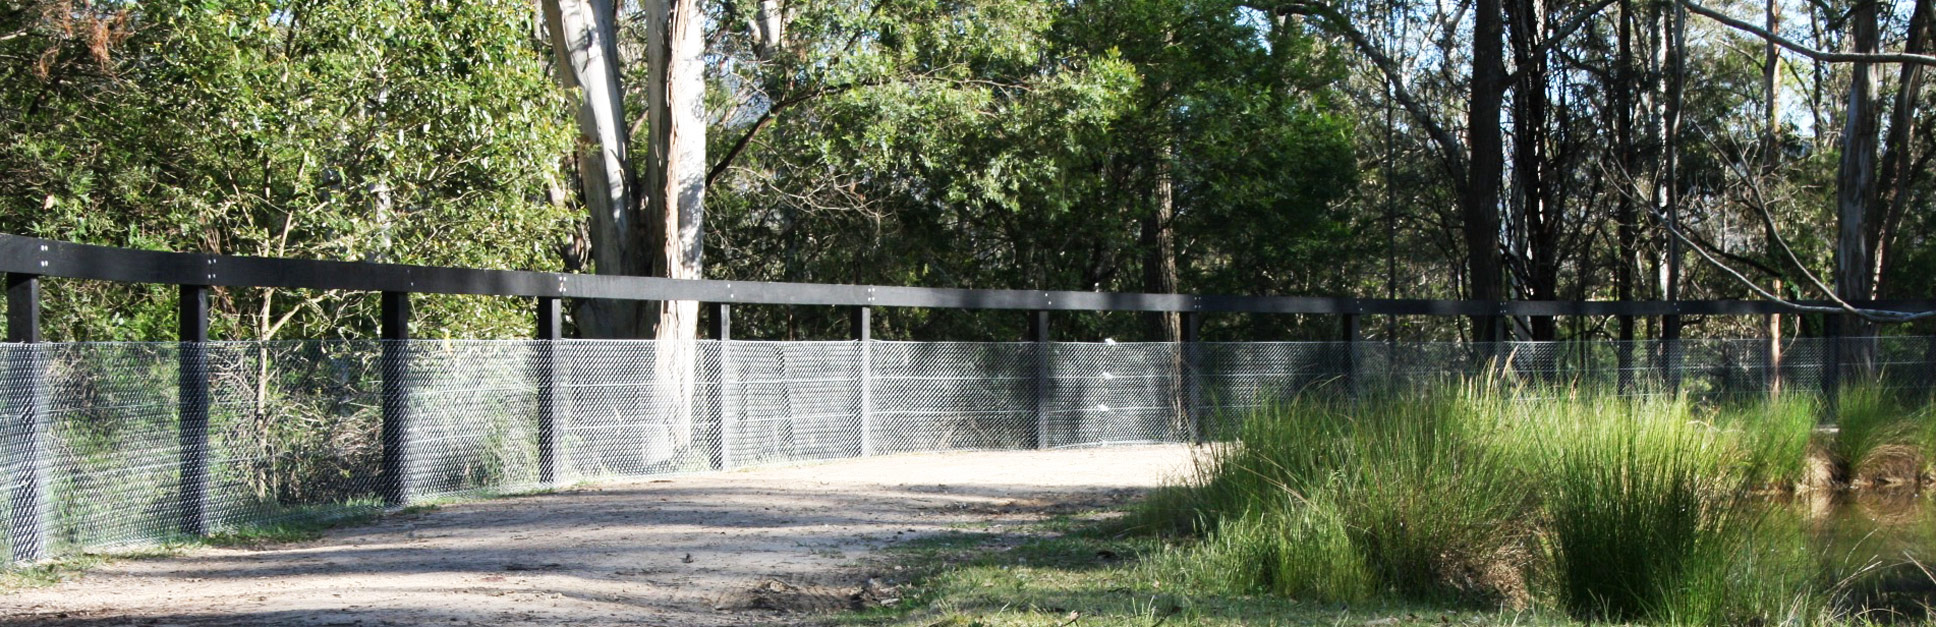 post-rail-fencing-home